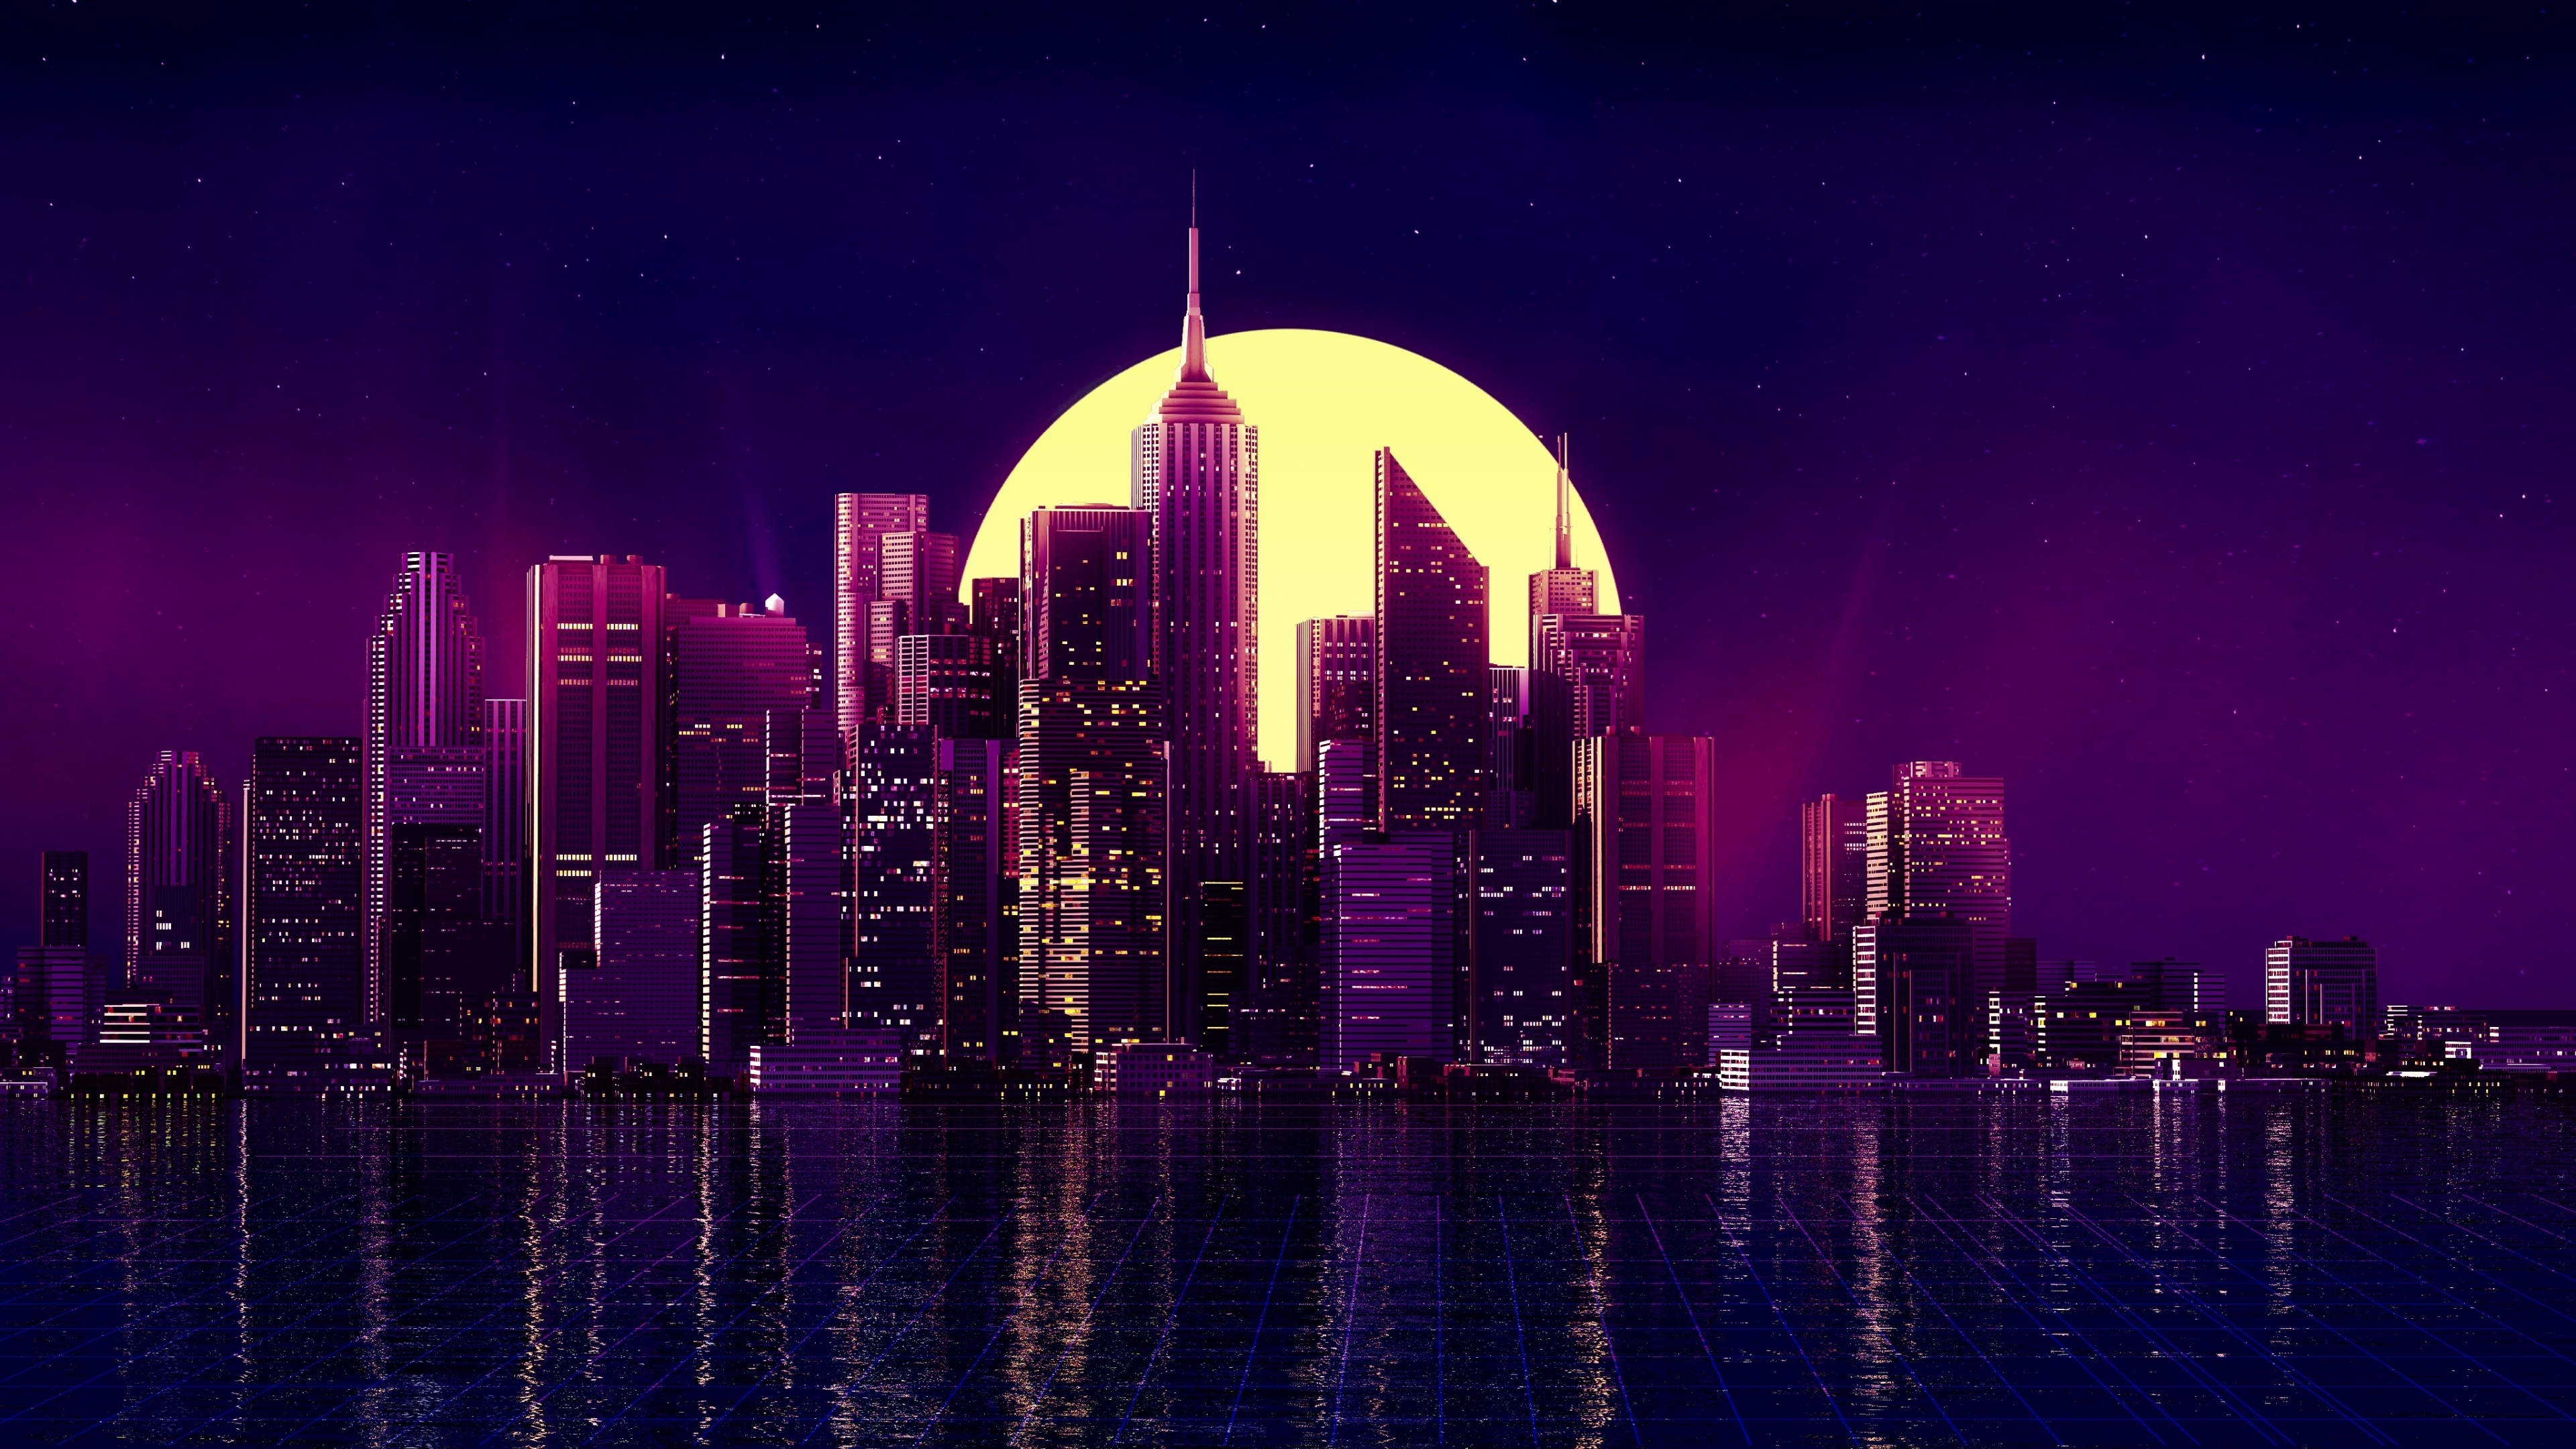 3840x2160 Neon New York City 4k Wallpaper Hd City 4k